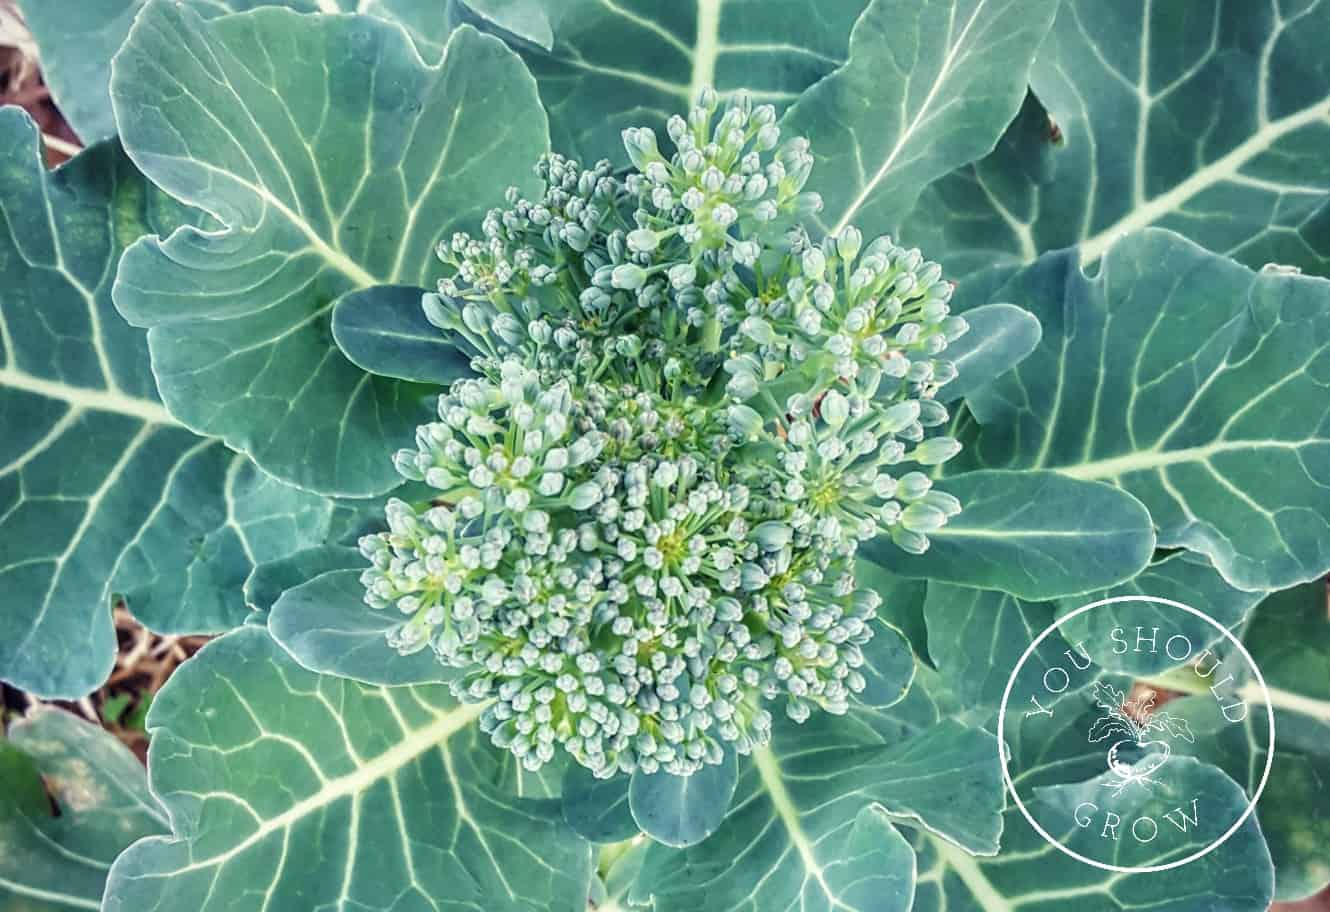 Three tricks to growing broccoli at youshouldgrow.com. Your source of encouragement and advice for growing your own food.